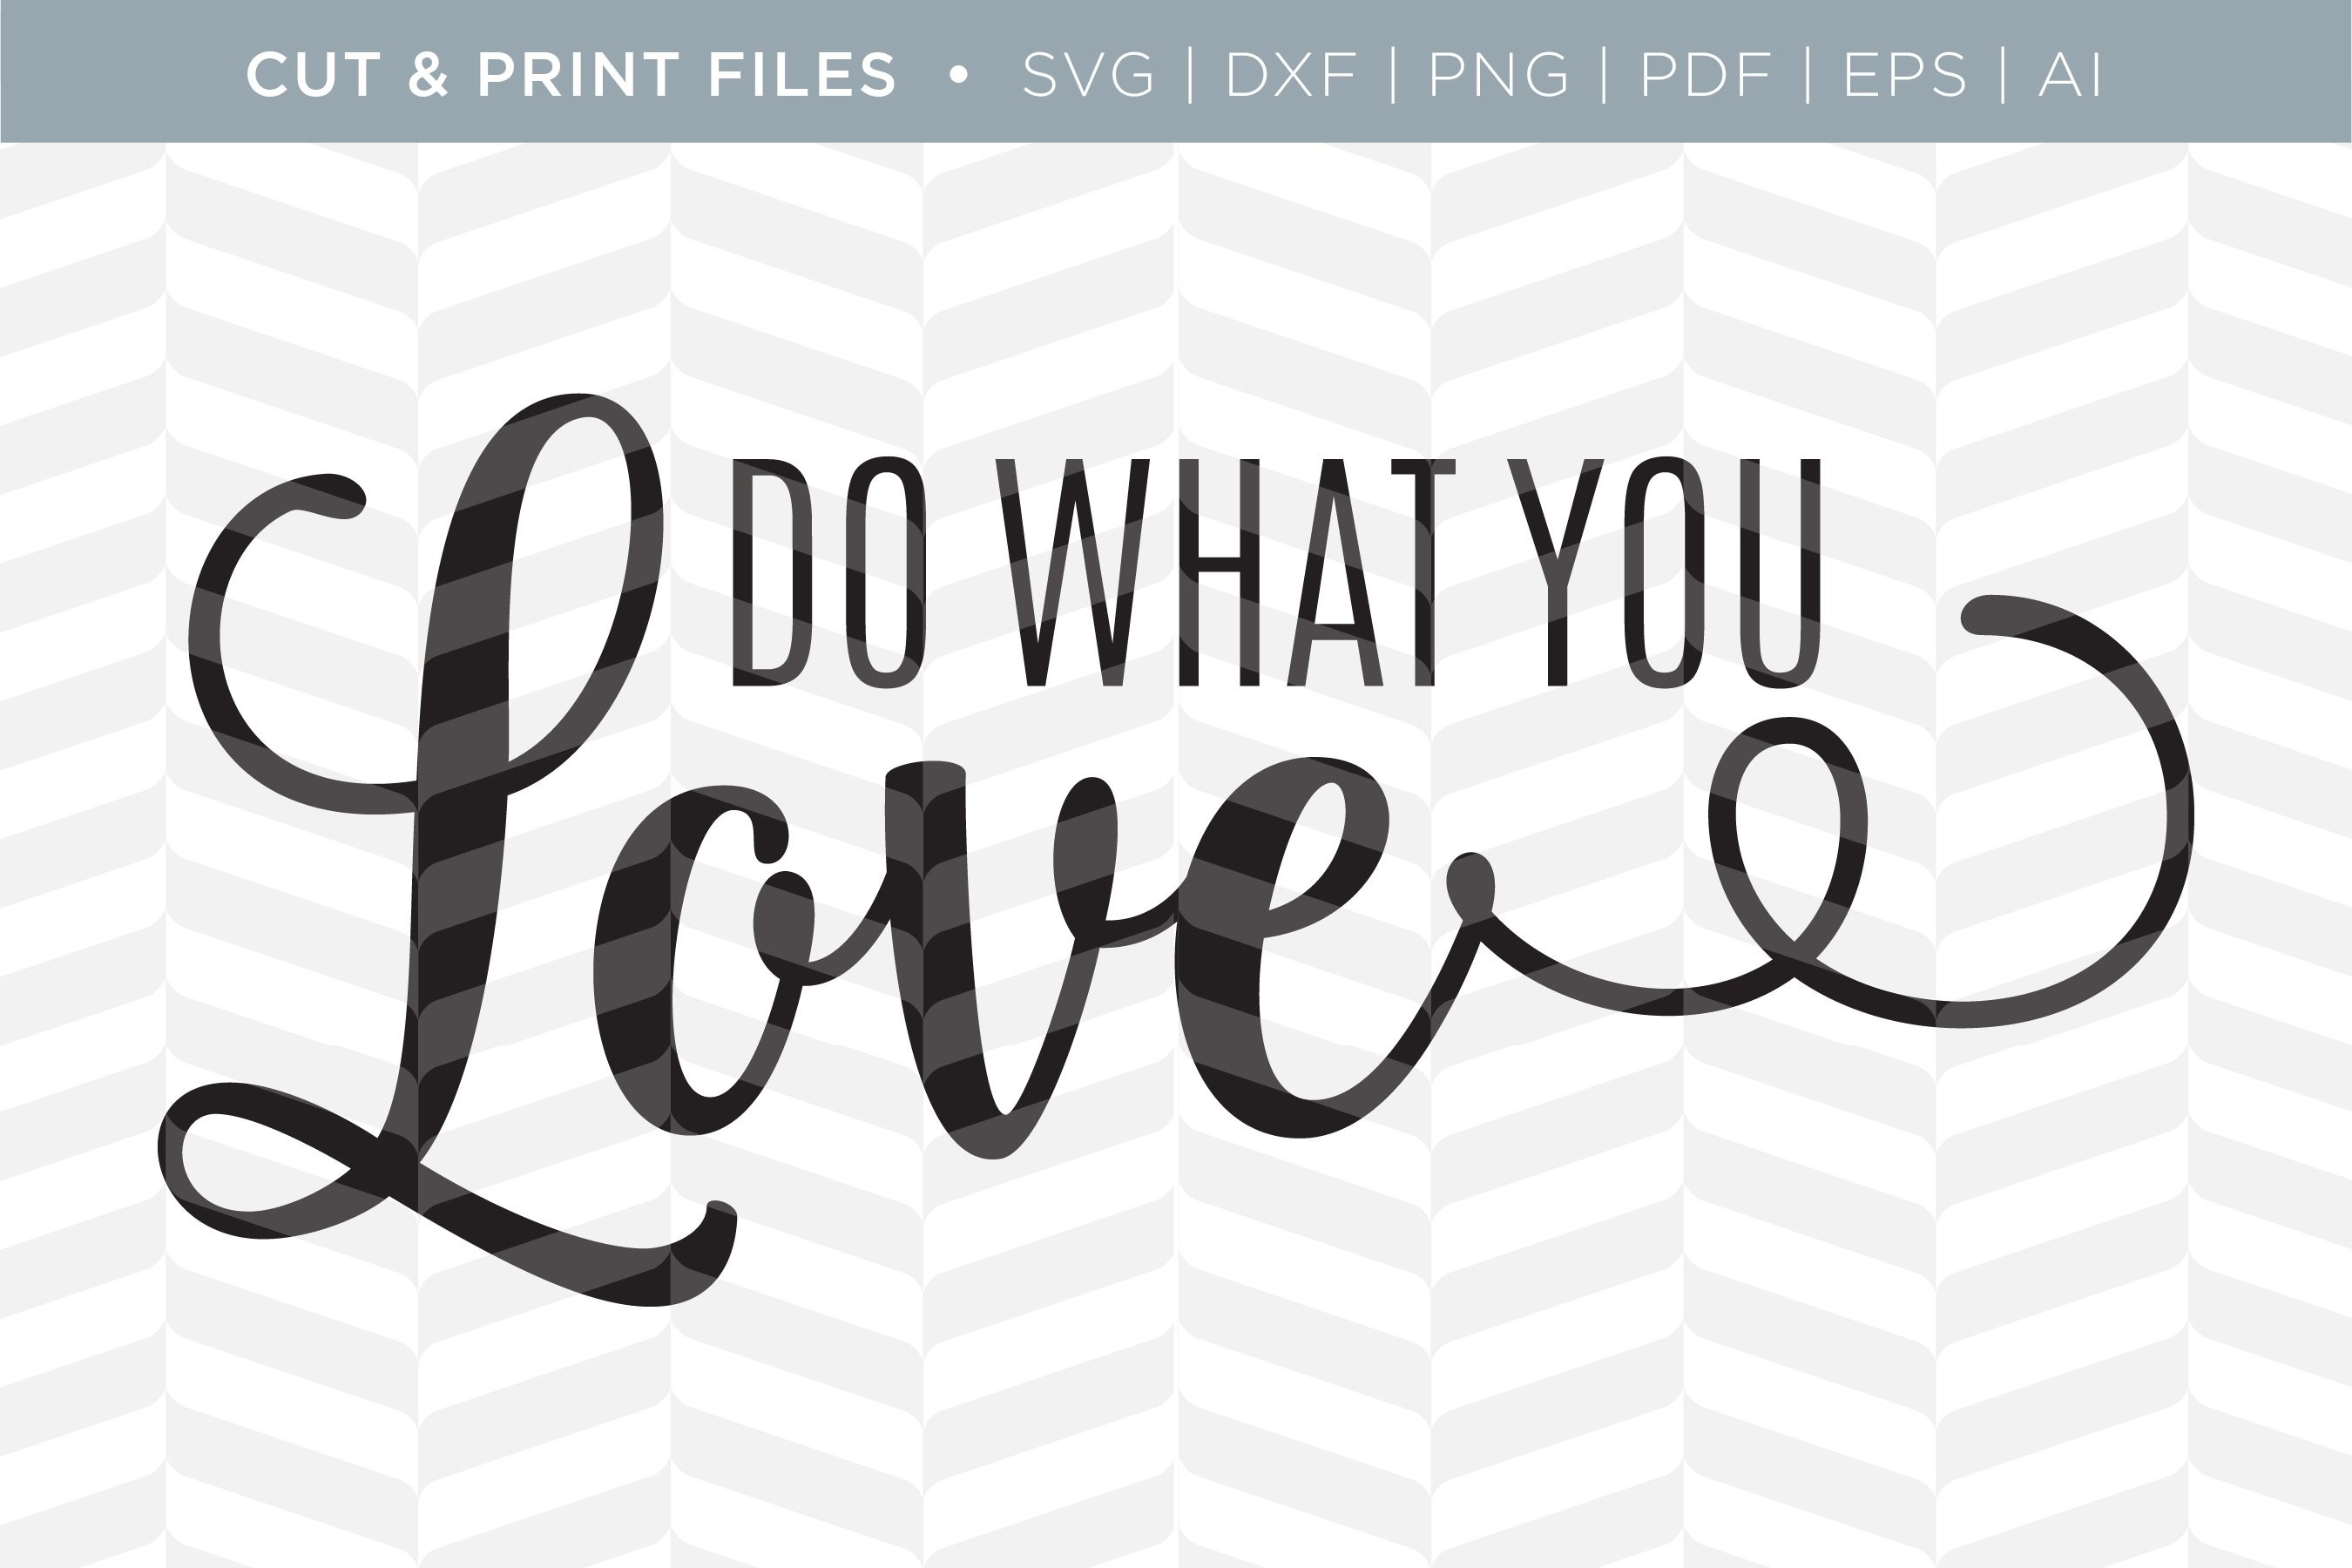 Download What You Love SVG Cut/Print Files ~ Illustrations ...